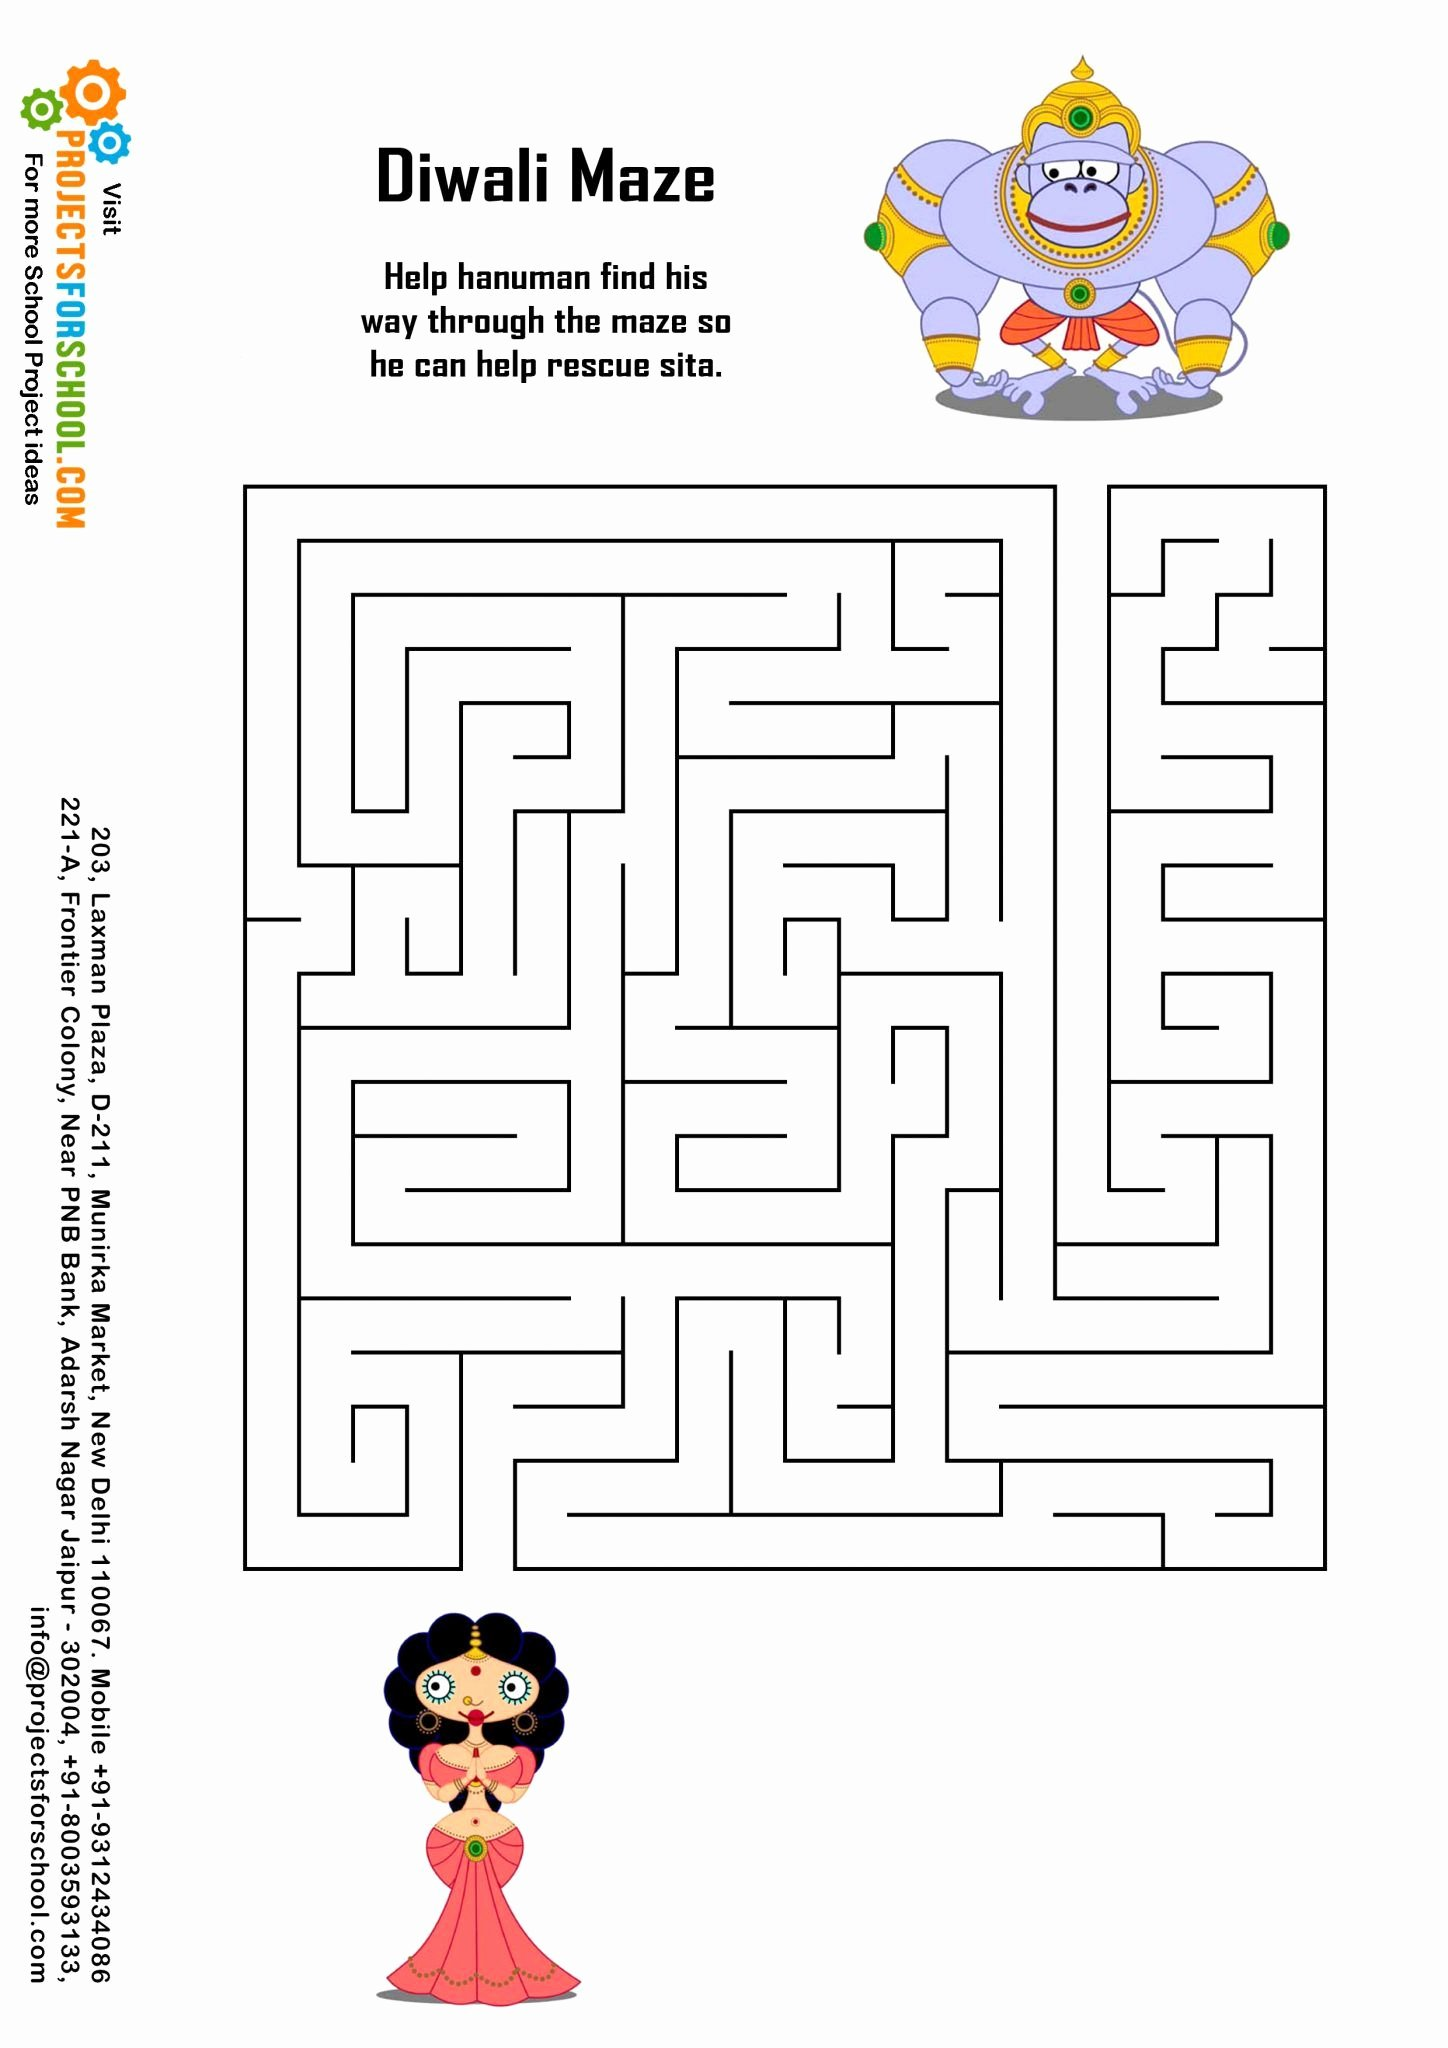 Diwali Worksheets for Preschoolers Inspirational Kids Science Projects Diwali Maze Free